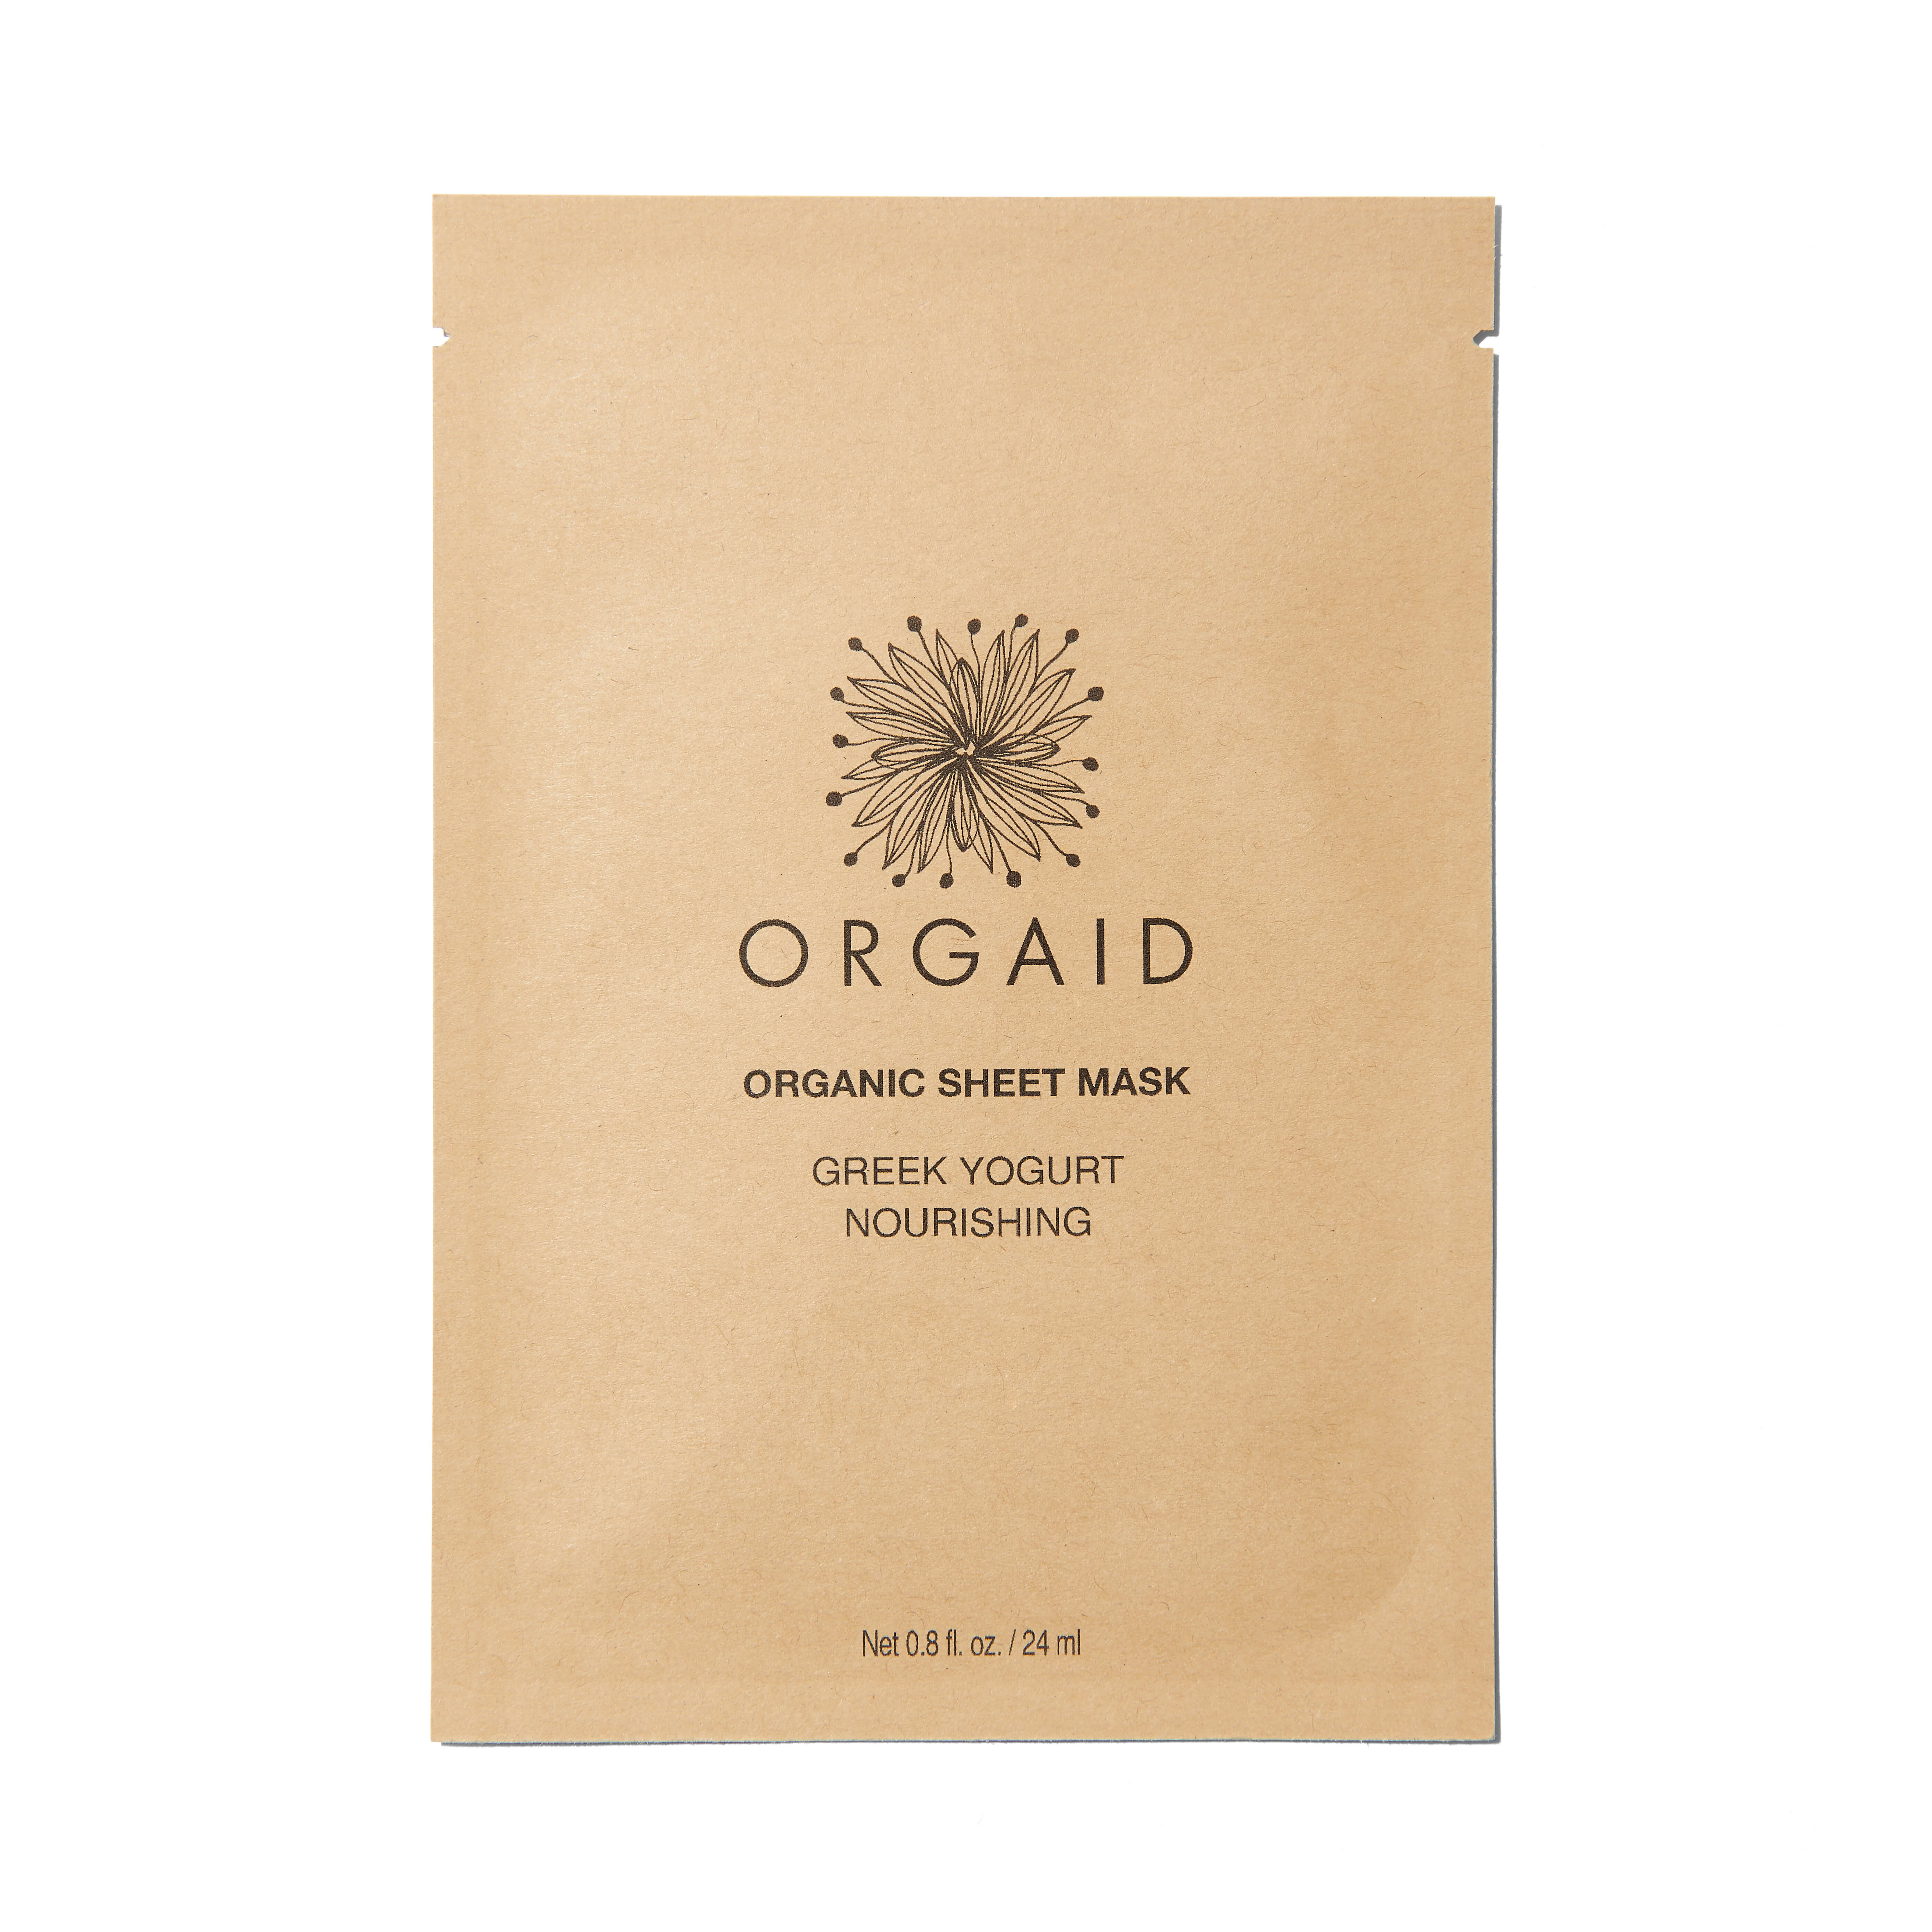 860451000222 - ORGAID Greek Yogurt & Nourishing Organic Sheet Mask